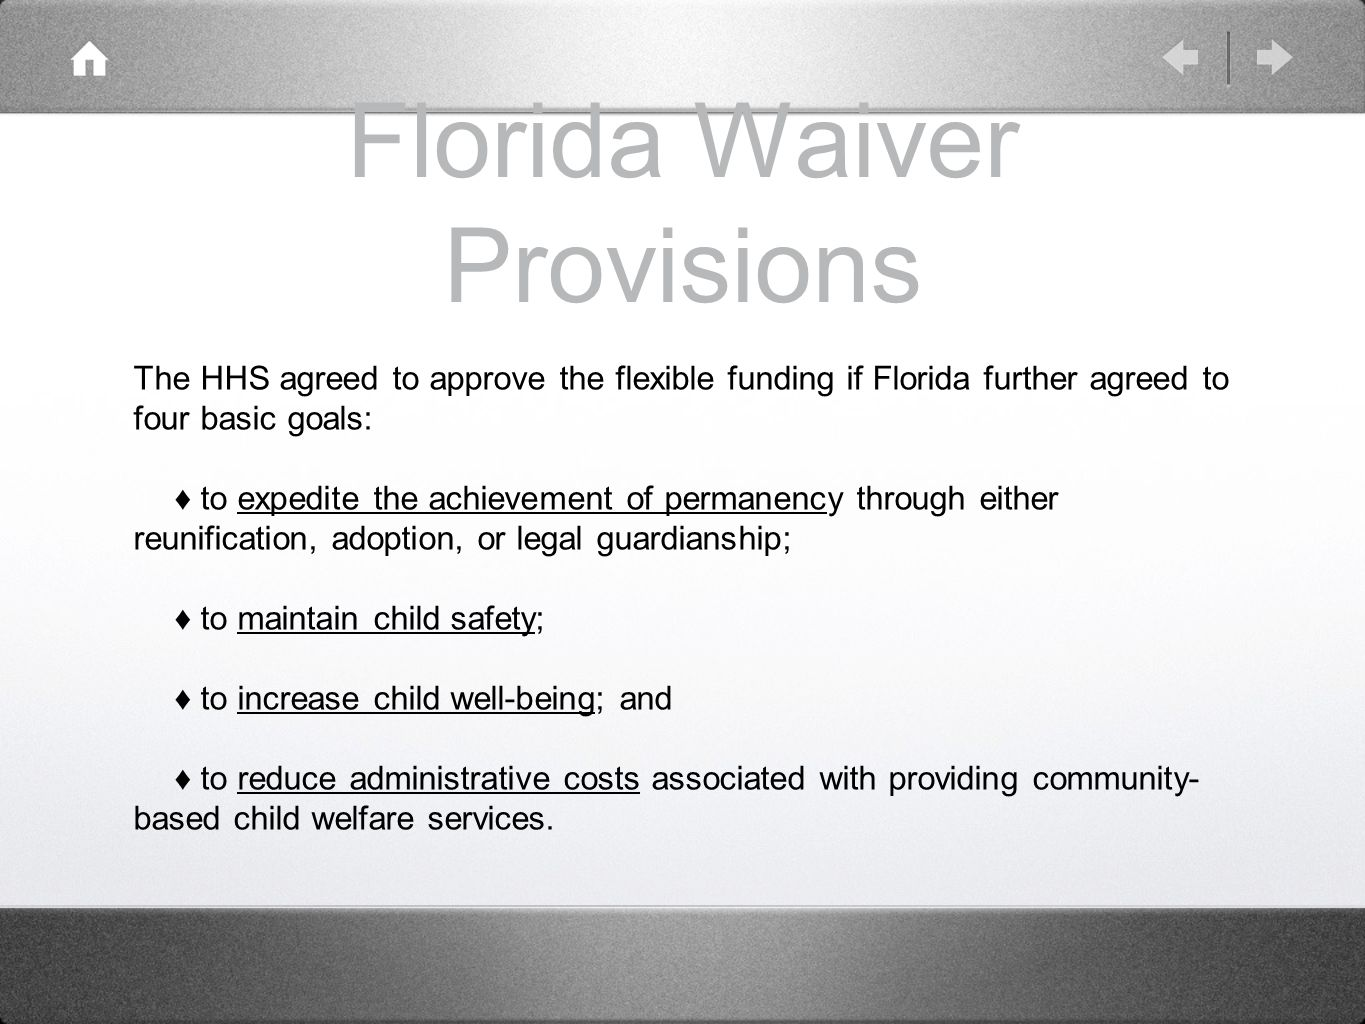 Florida Waiver Provisions The HHS agreed to approve the flexible funding if Florida further agreed to four basic goals: ♦ to expedite the achievement of permanency through either reunification, adoption, or legal guardianship; ♦ to maintain child safety; ♦ to increase child well-being; and ♦ to reduce administrative costs associated with providing community- based child welfare services.